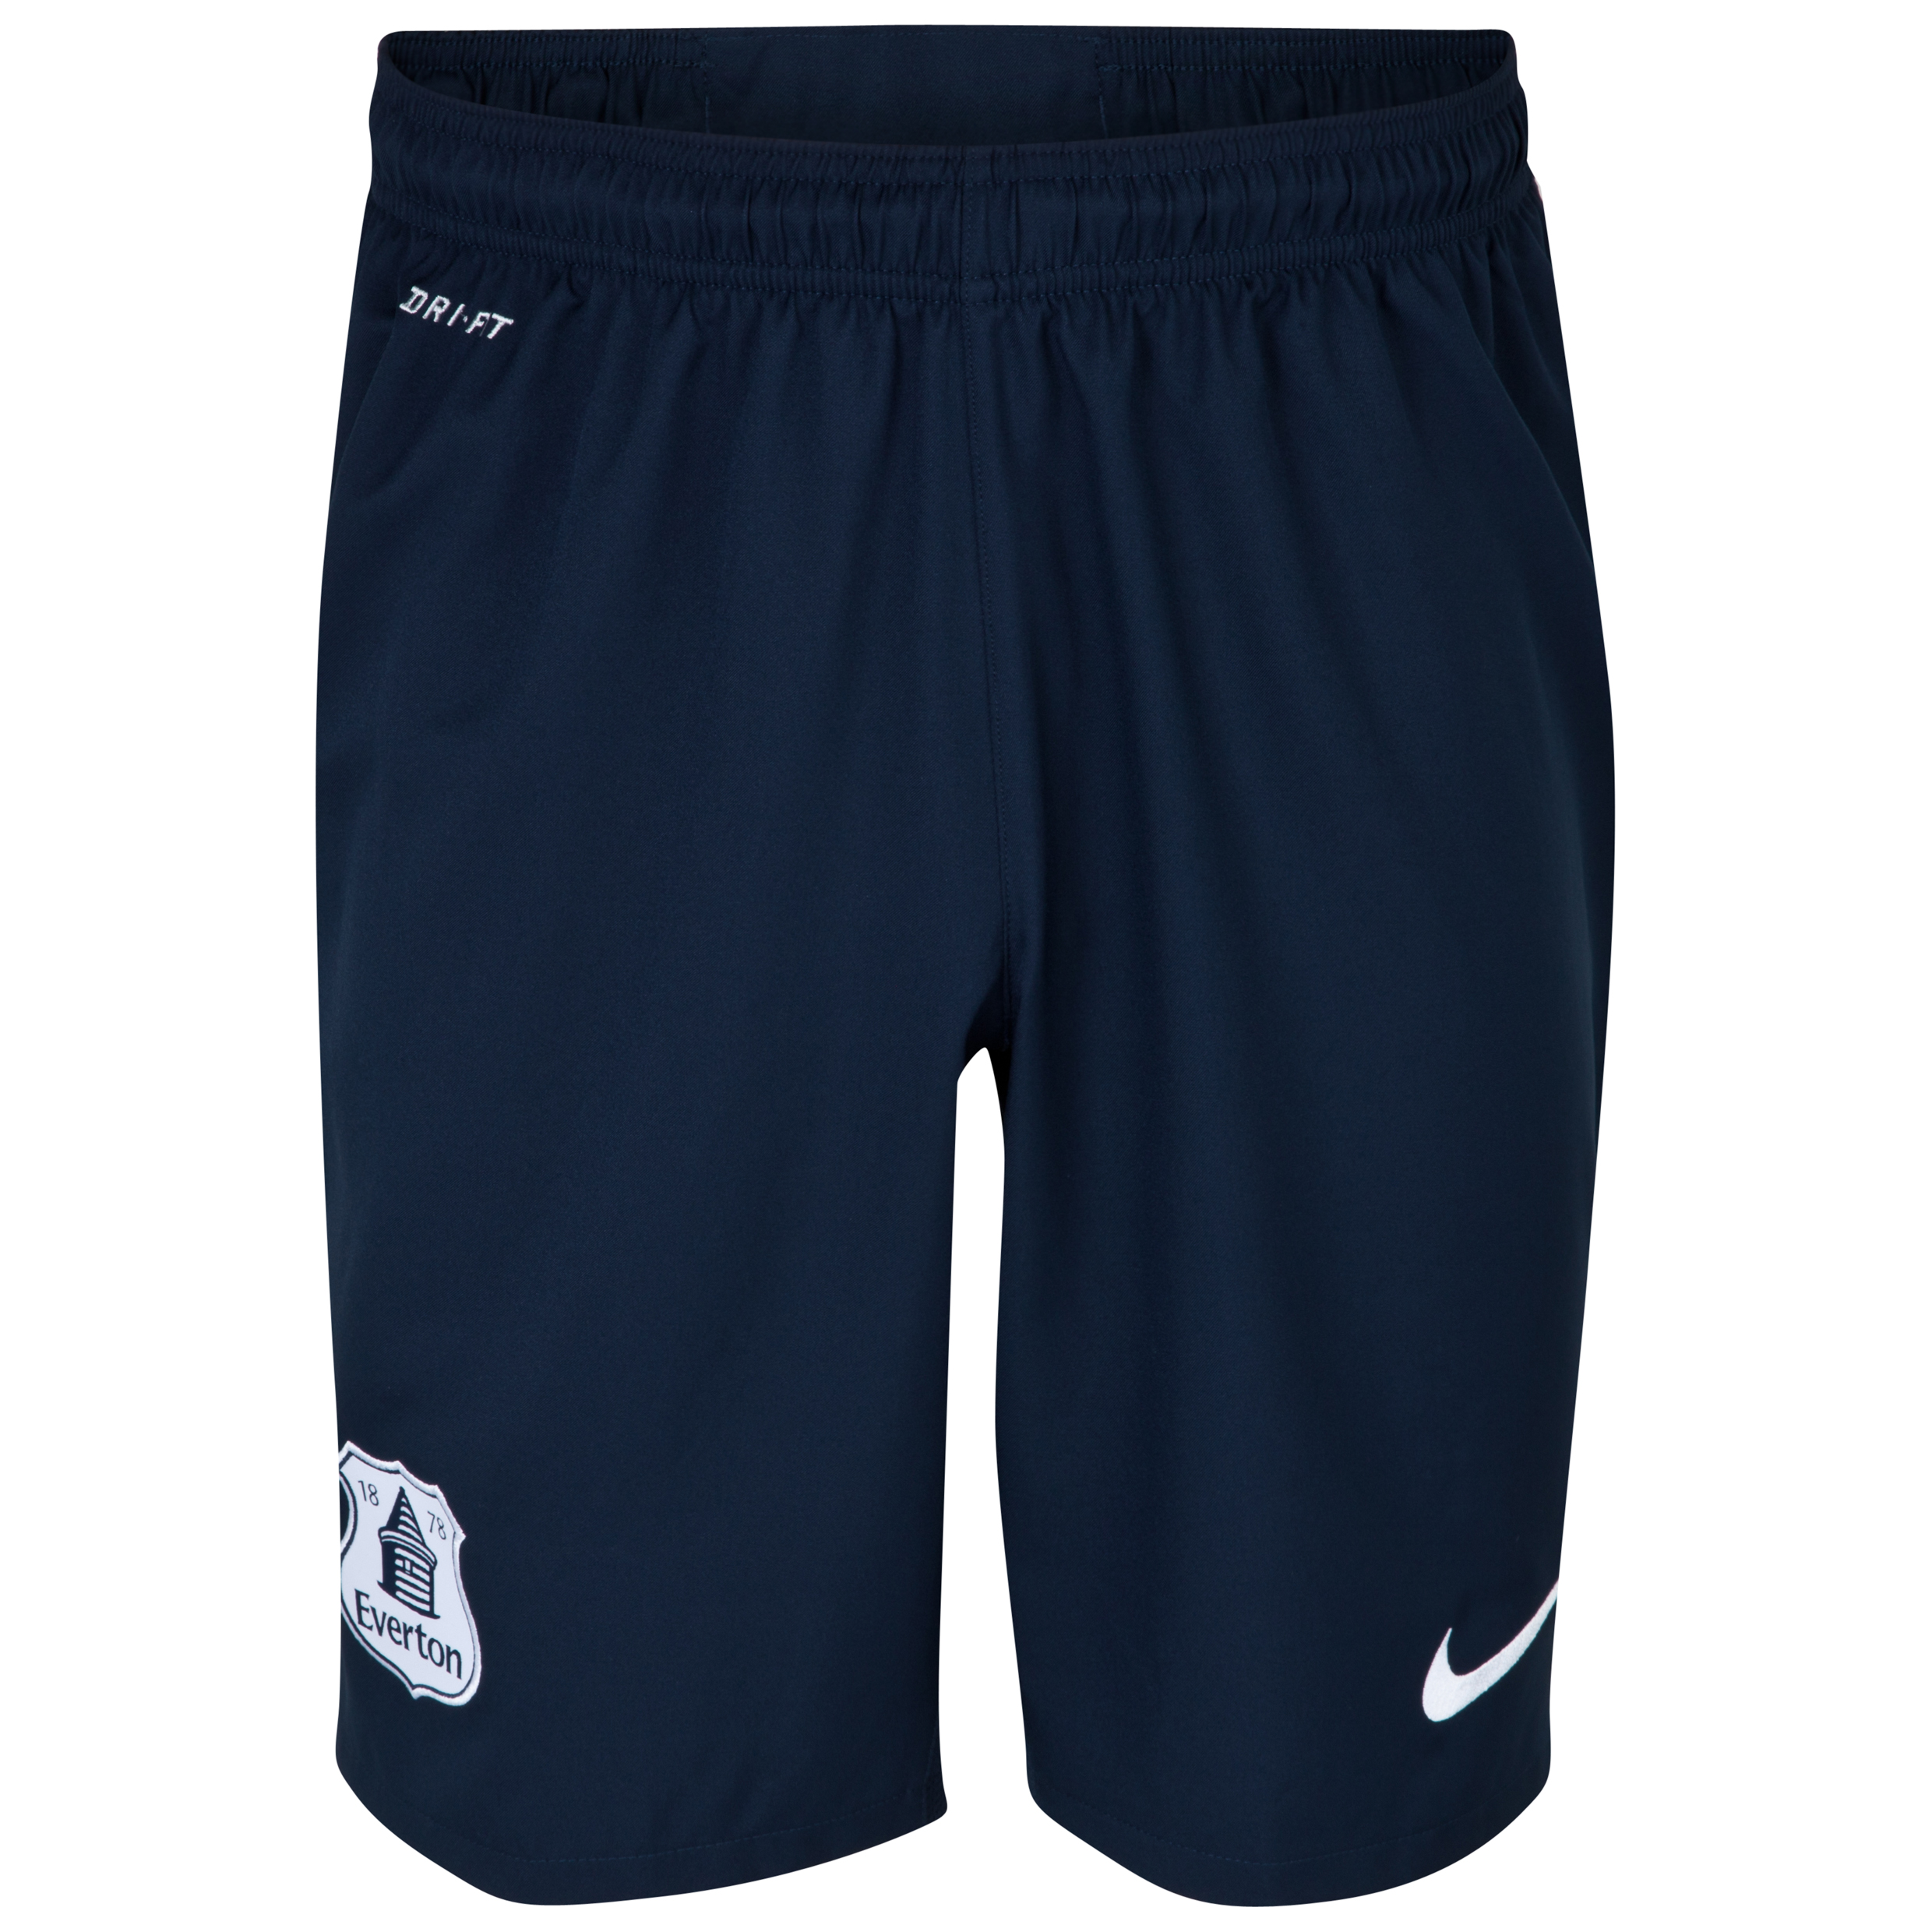 Everton 3rd Short 2013/14 Navy